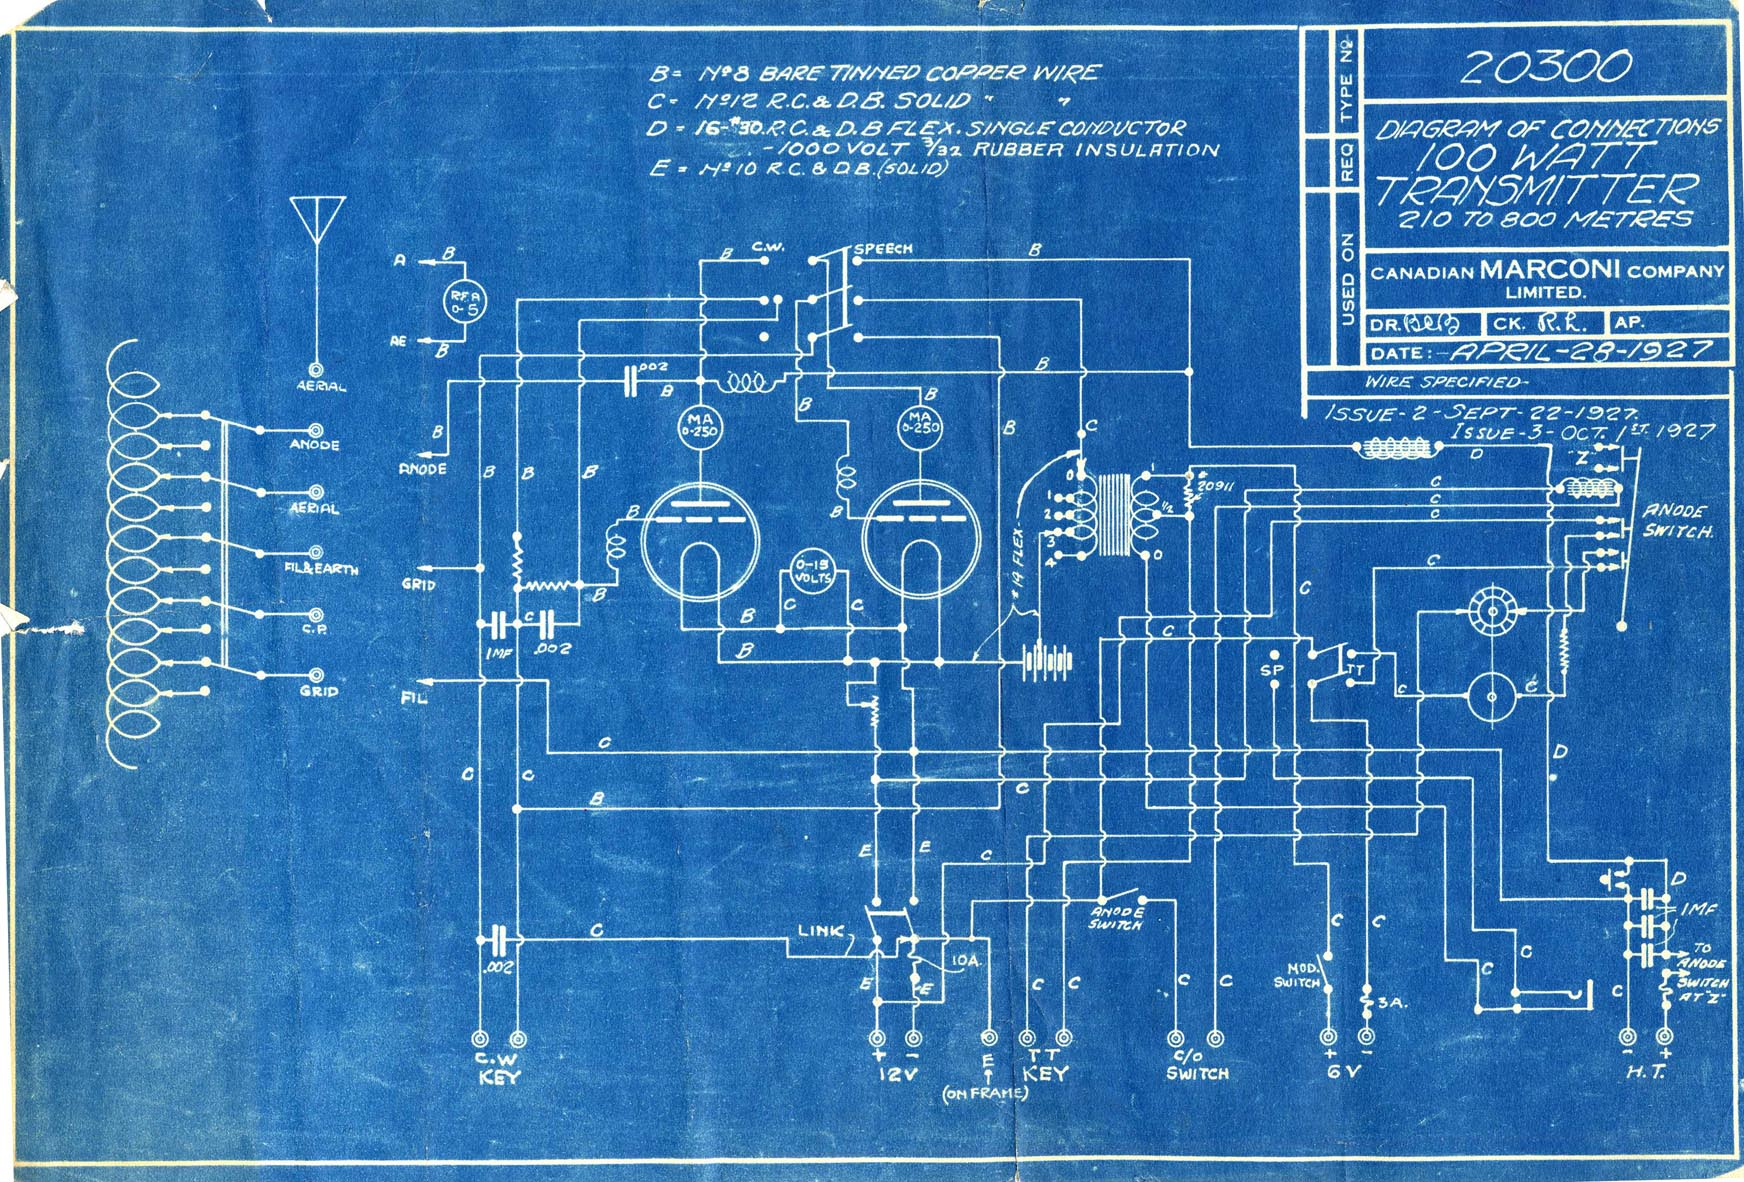 Results Page 73 About Variable Sine Wave Oscillator Searching Ledcircuits 2 Delabs Schematics Electronic Circuit 100w Medium Frequency Transmitter